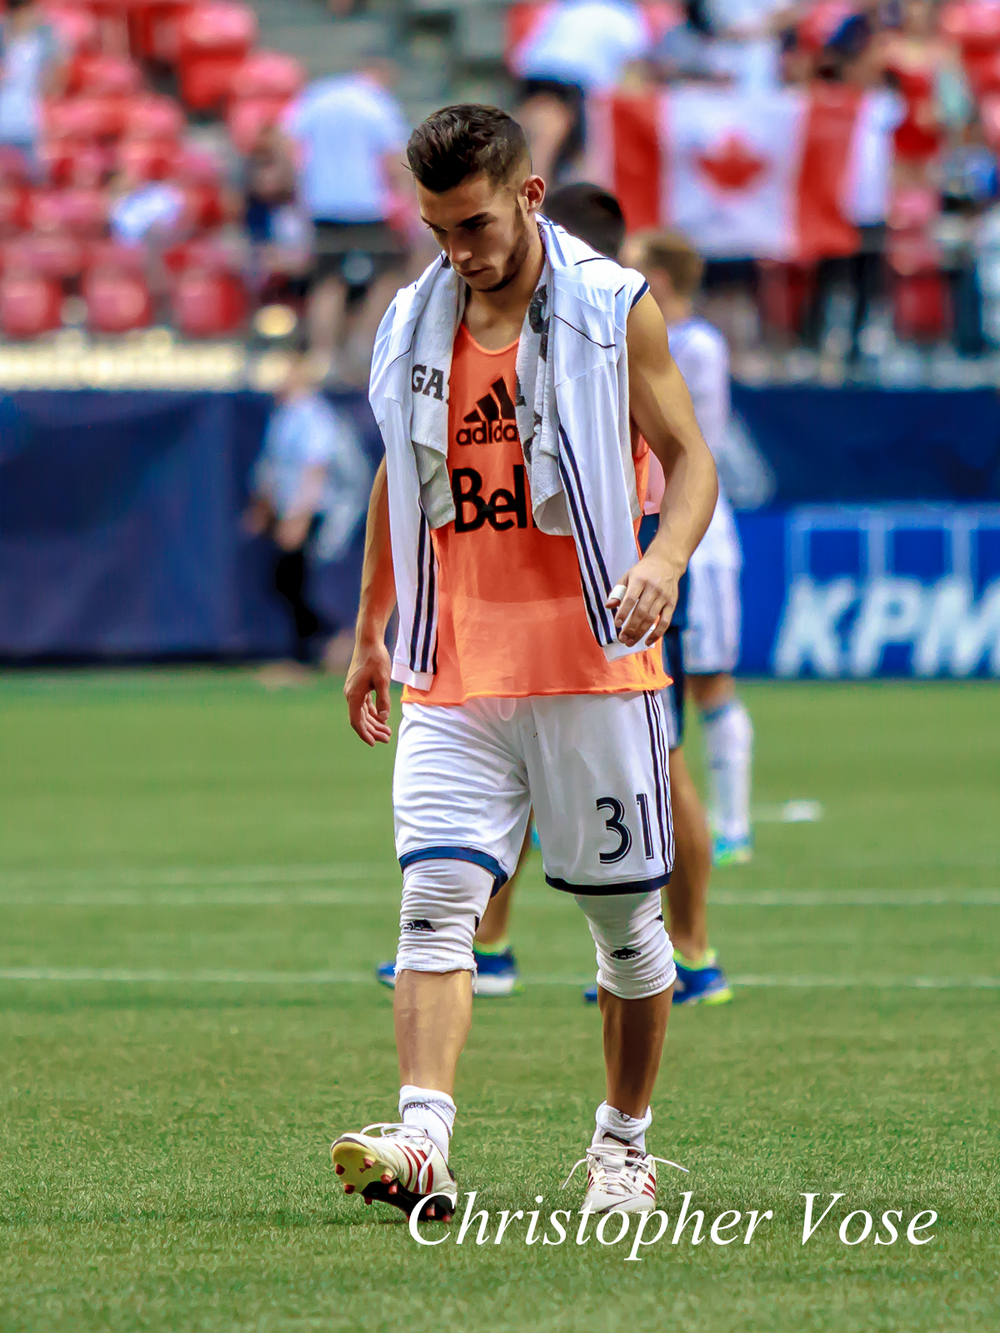 Russell Teibert, the Canadian Soccer Jesus, did everything in Carson on Saturday night and was worthy of the armband in Morales' absence.